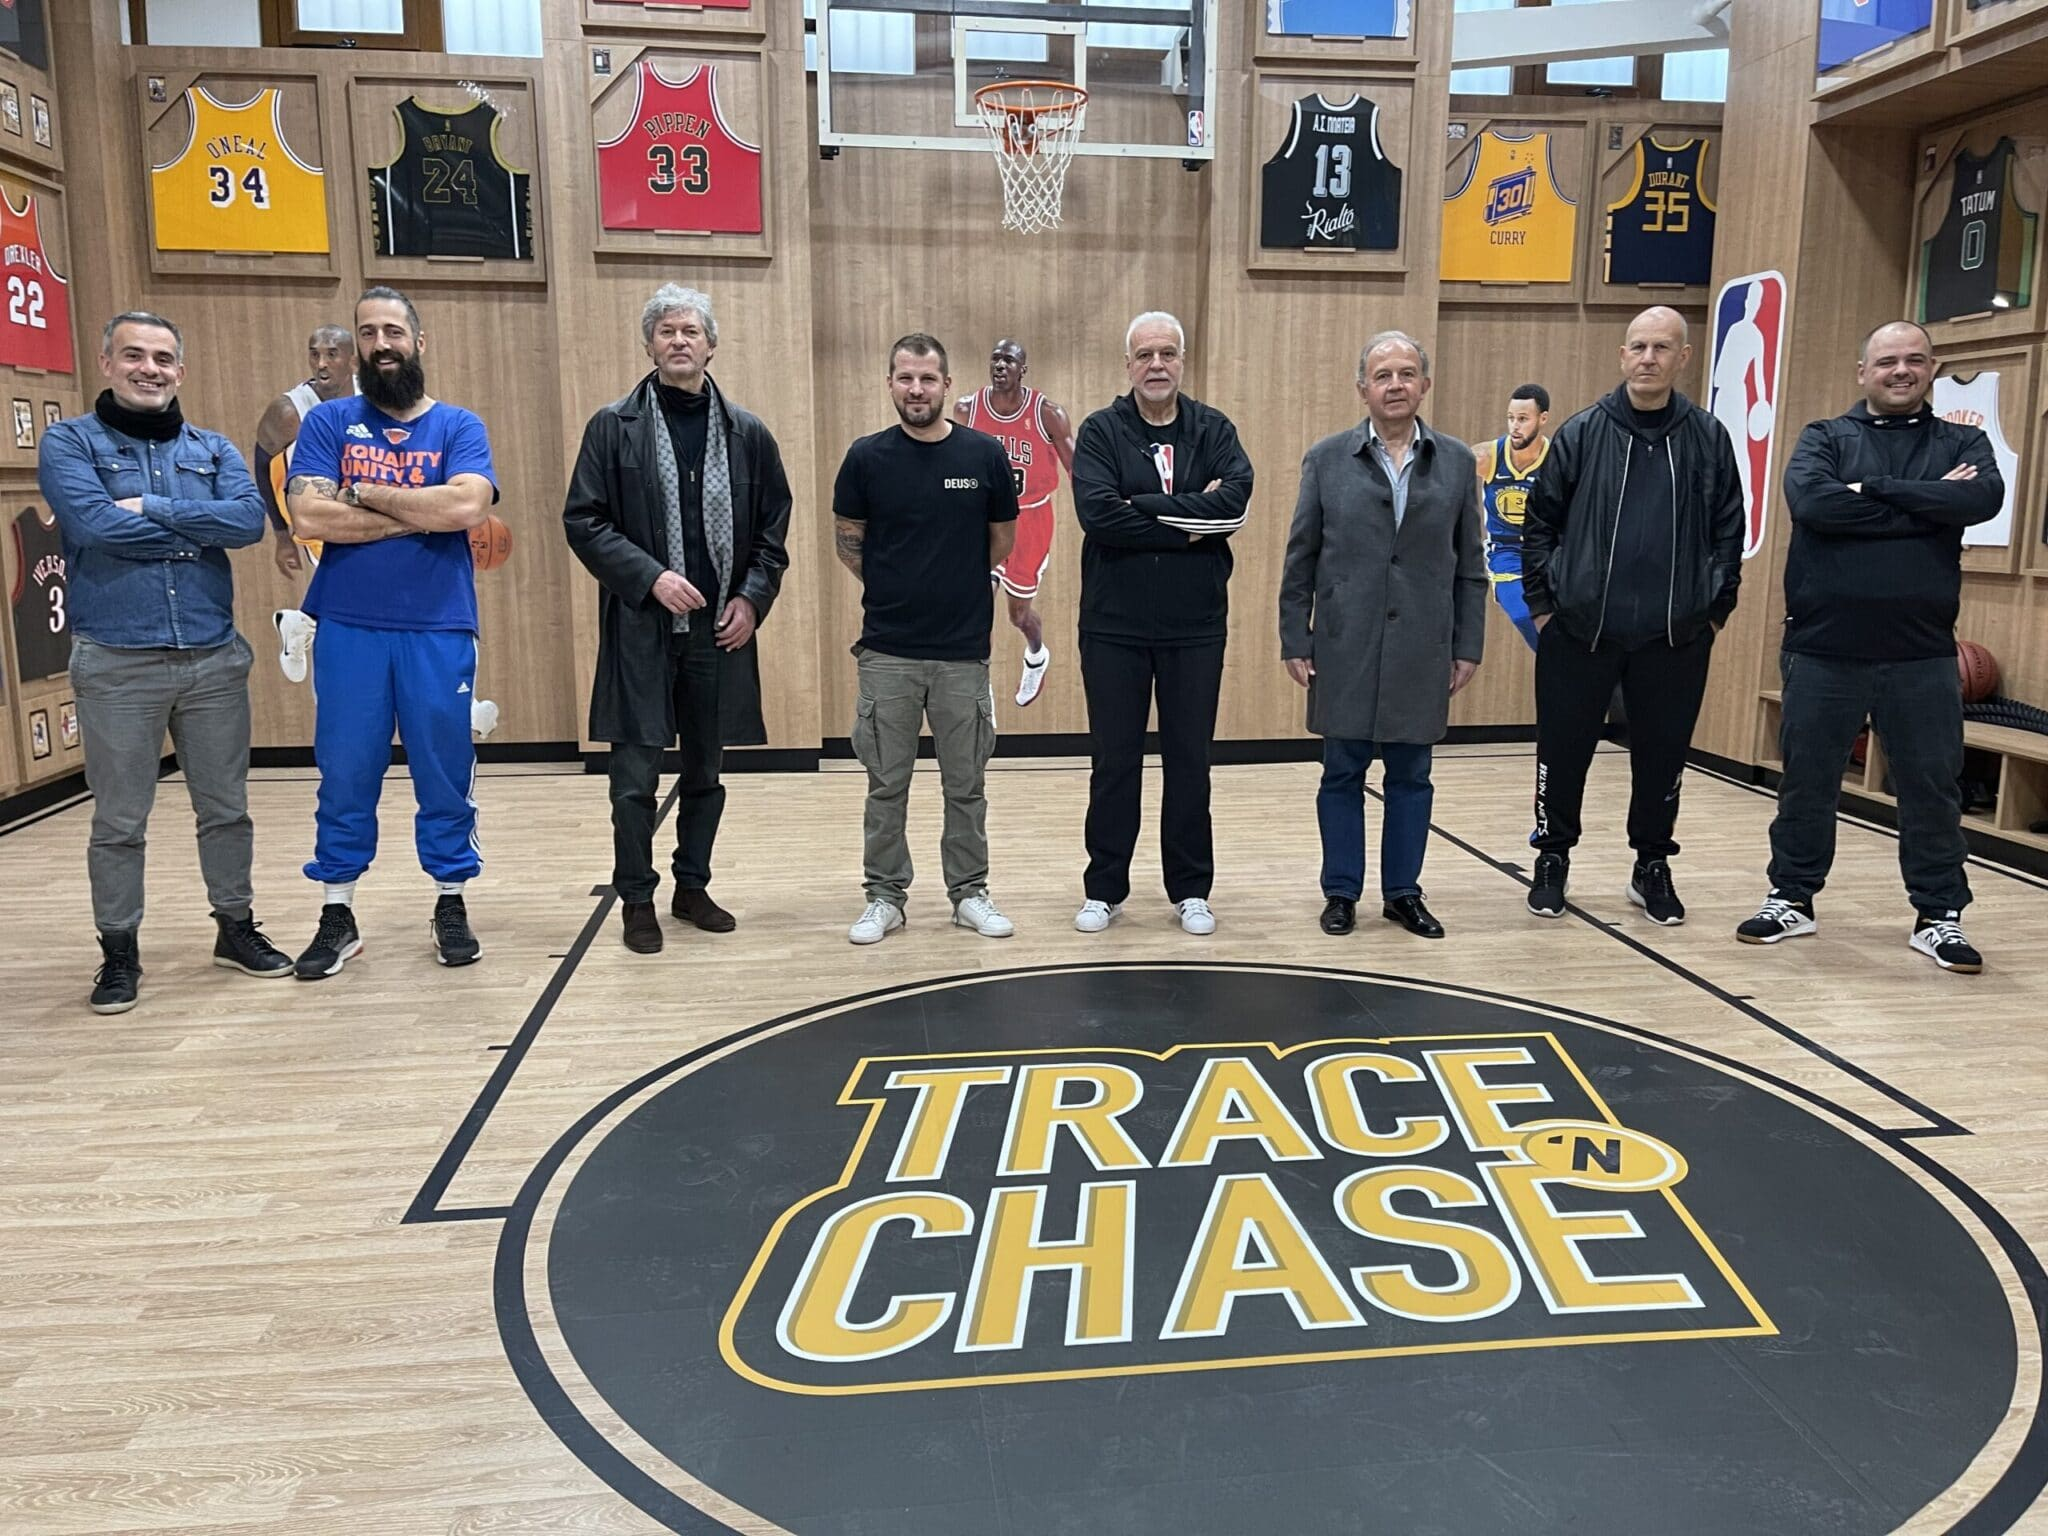 Trace 'N Chase hosts Greek Basketball legend and current President of Aris B.C. Haris Papageorgiou as well as All-Time scorer of Iraklis B.C. and current Vice President of EKASTH Giannis Tsoumis